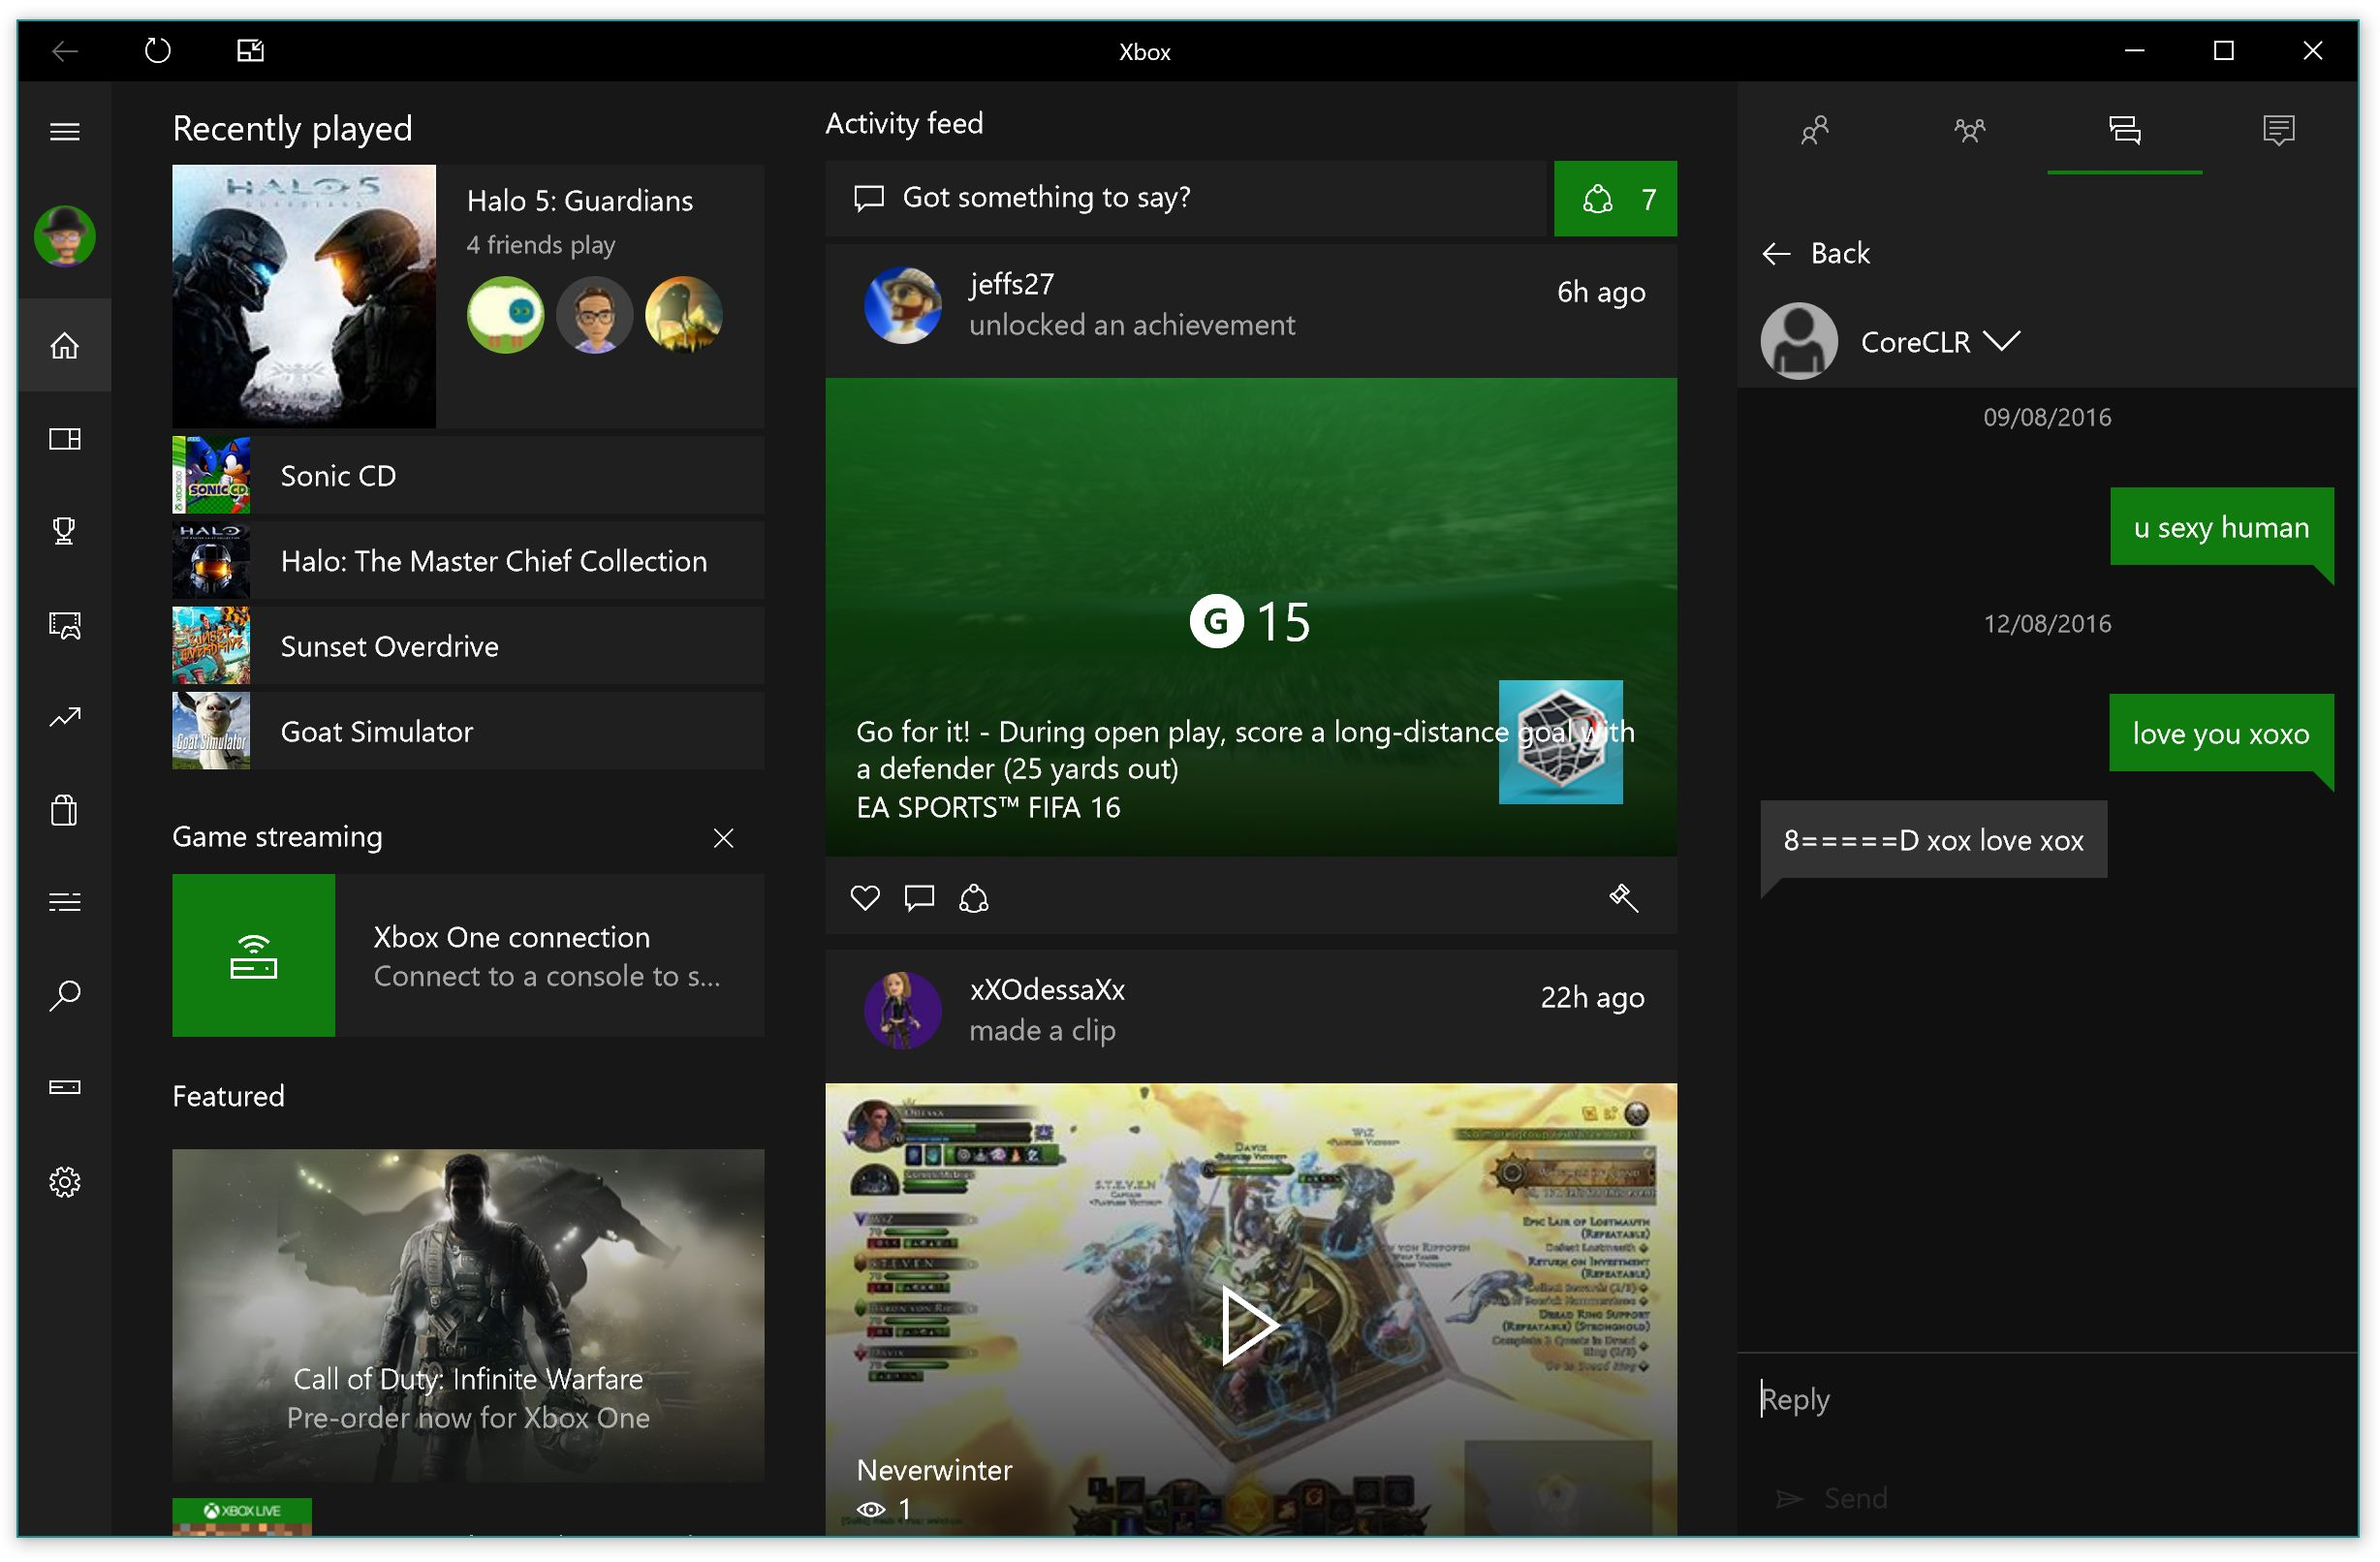 Xbox App for Windows